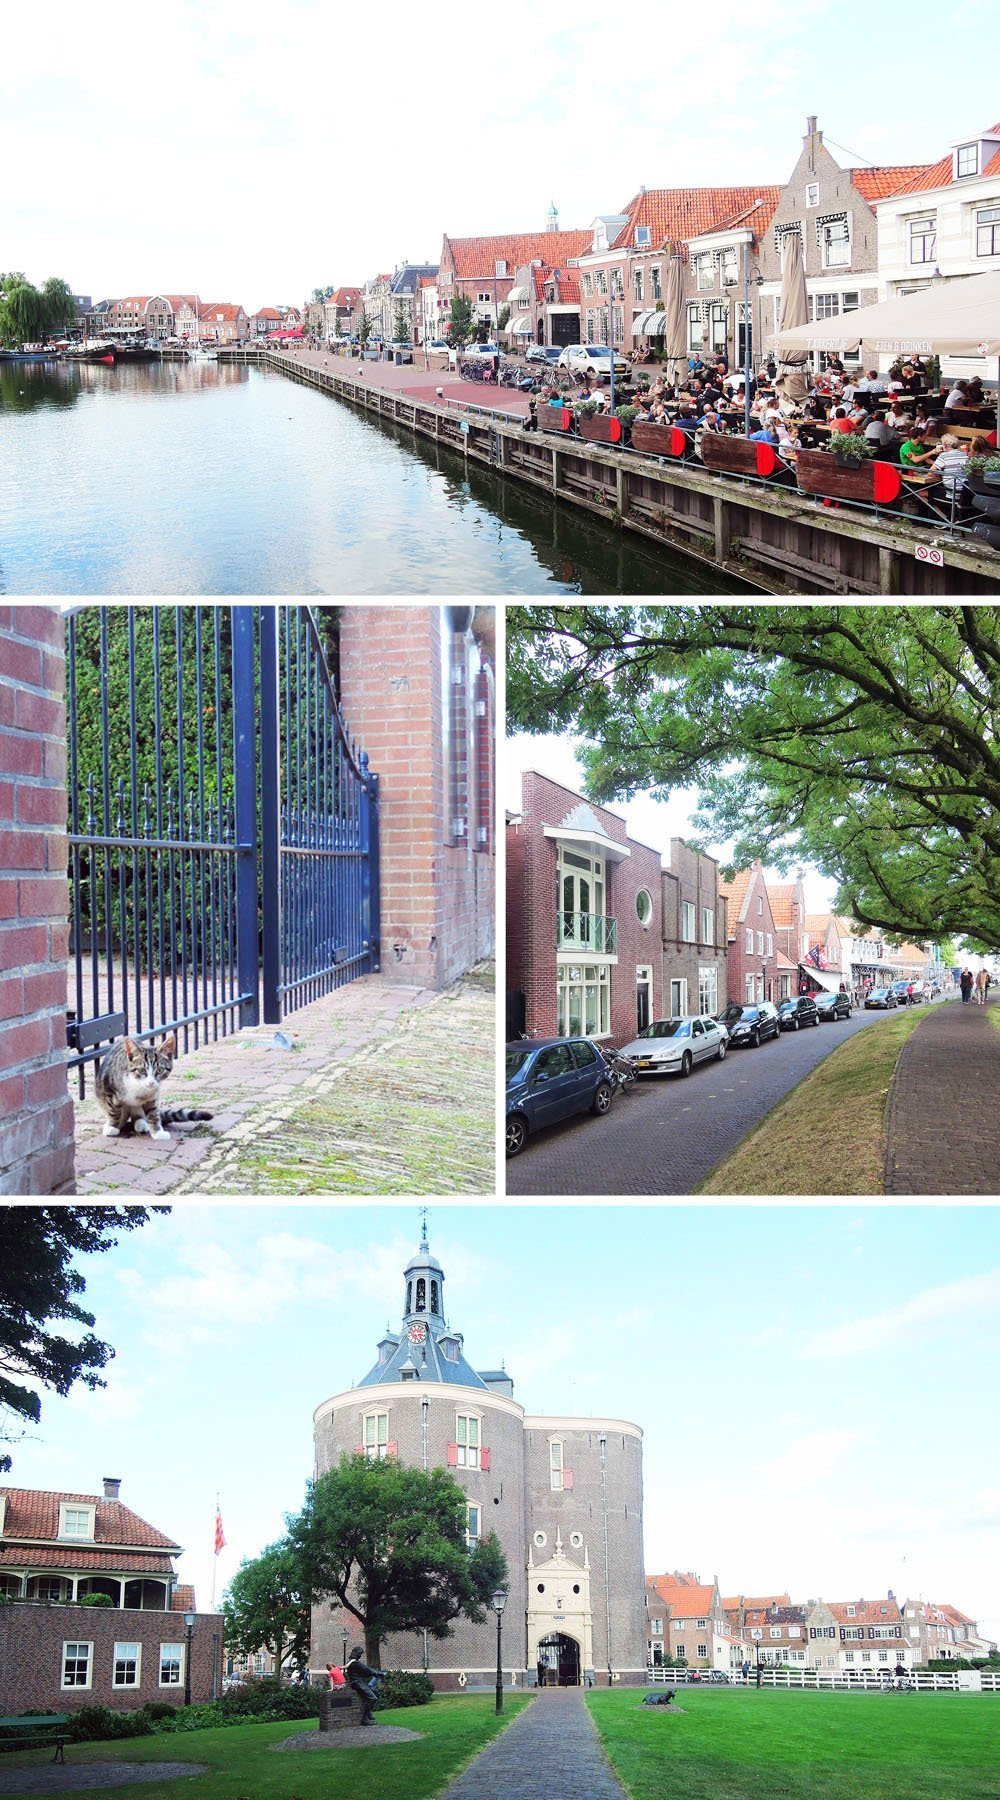 Enkhuizen in Flevoland is a historic, picturesque town set by the sea. It's a great stopover on your drive from Amsterdam to Giethoorn.